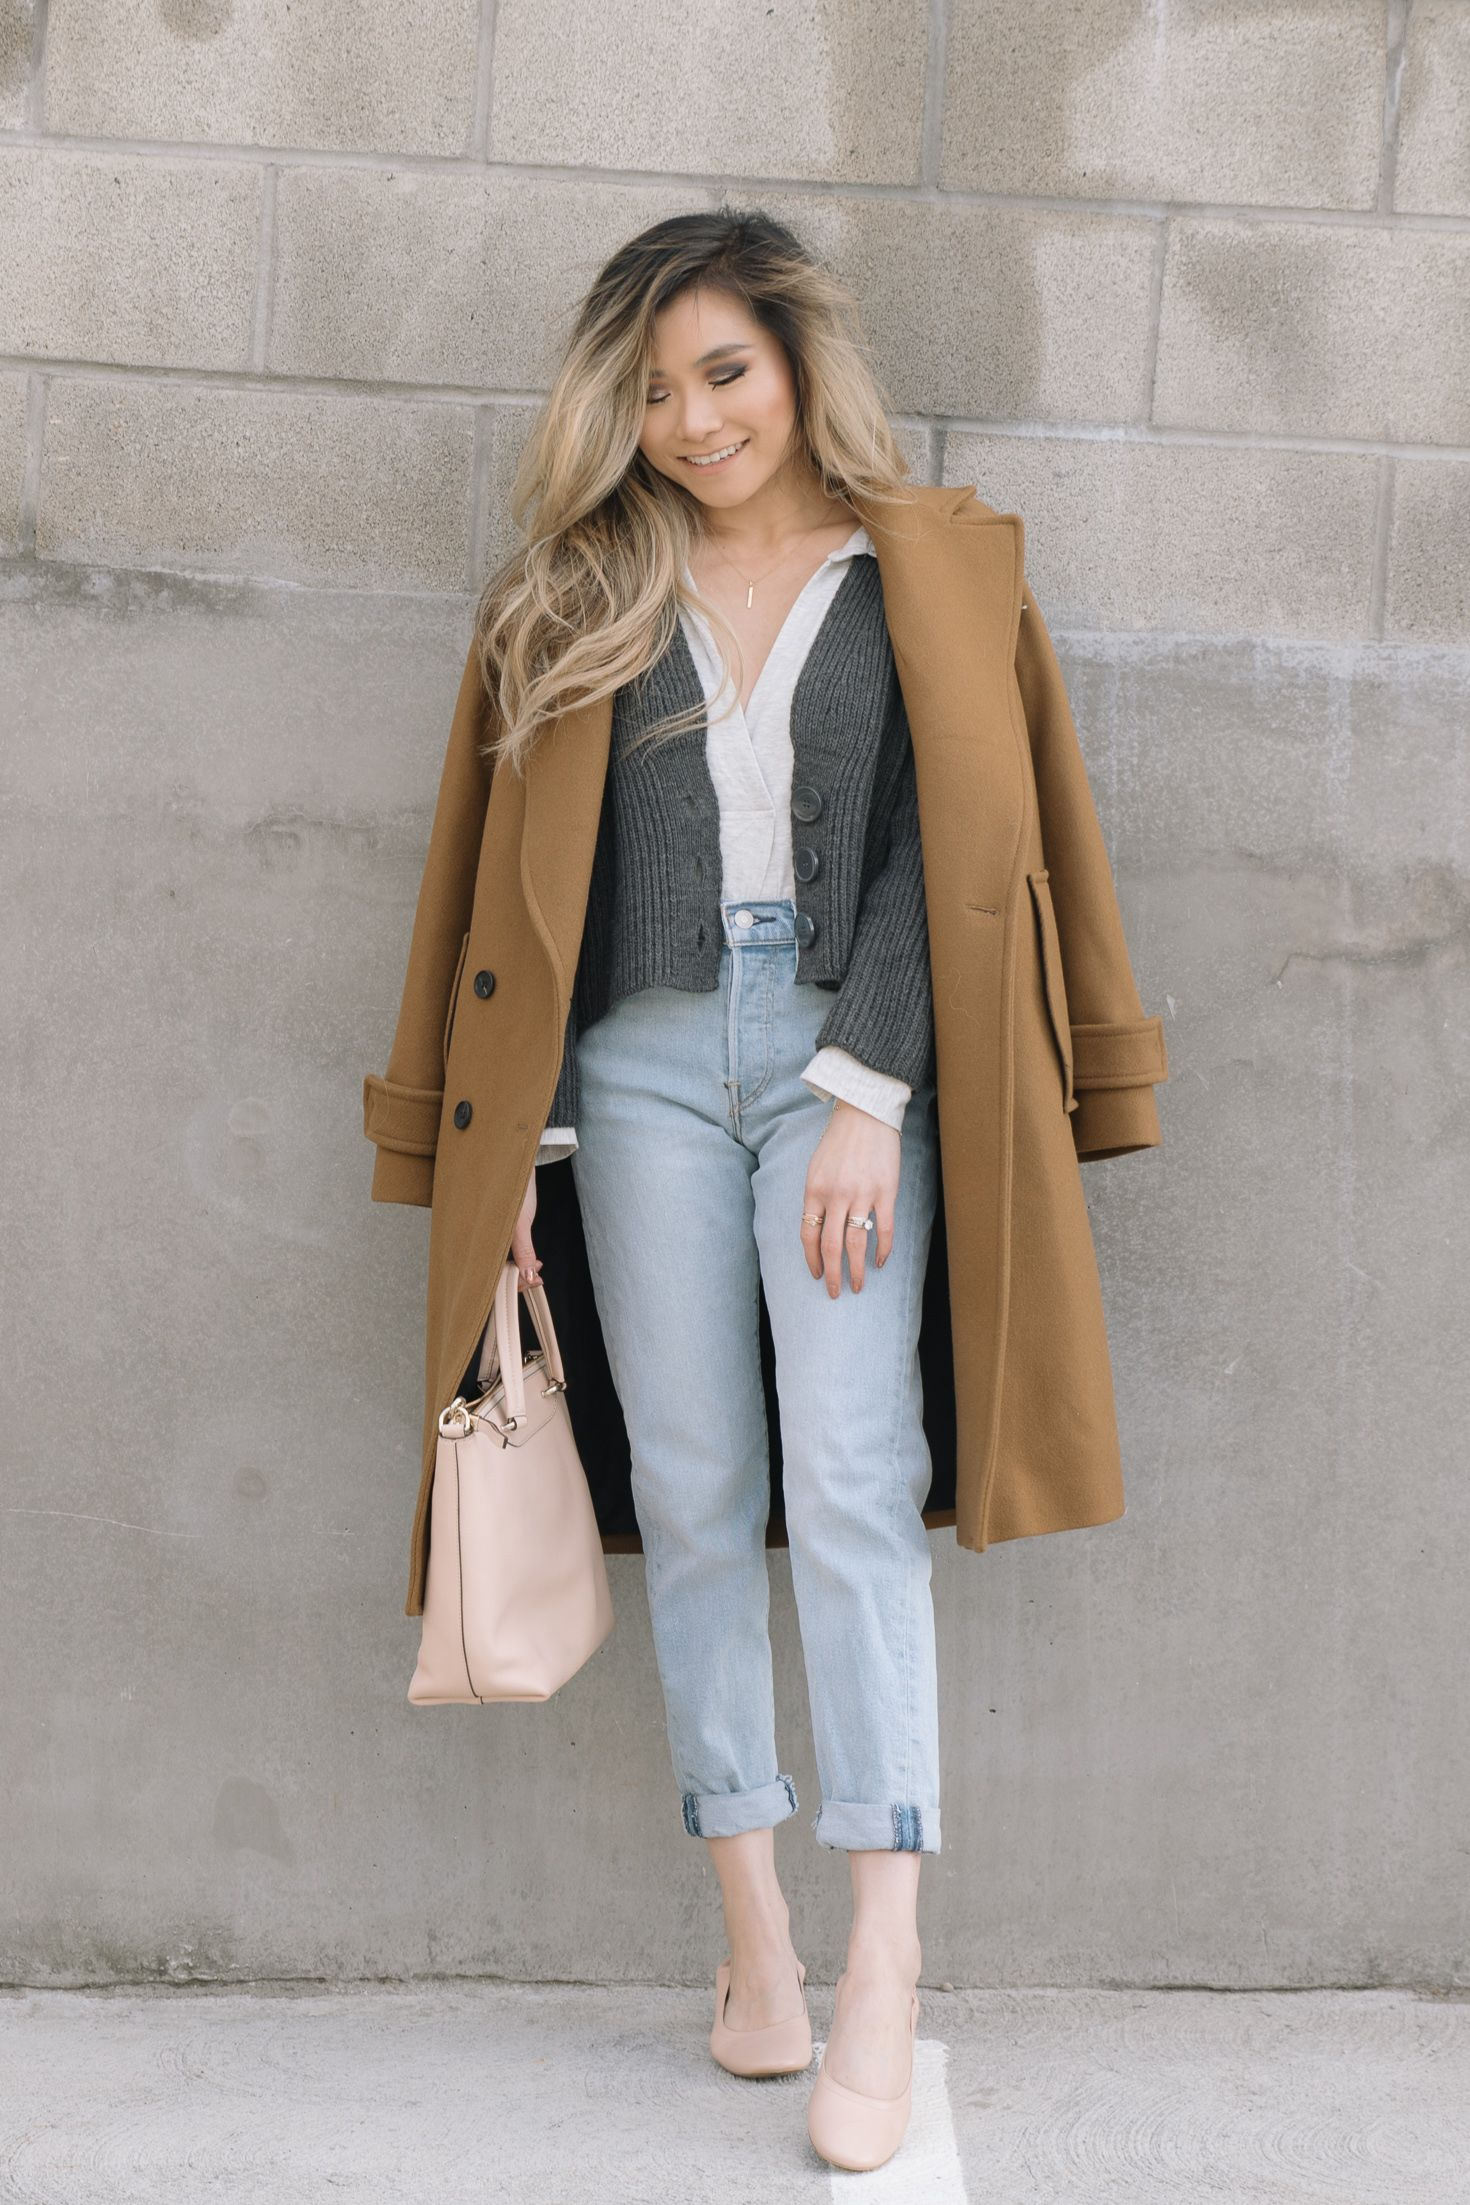 c01d2eb45c5 WINTER to SPRING outfits transition ideas